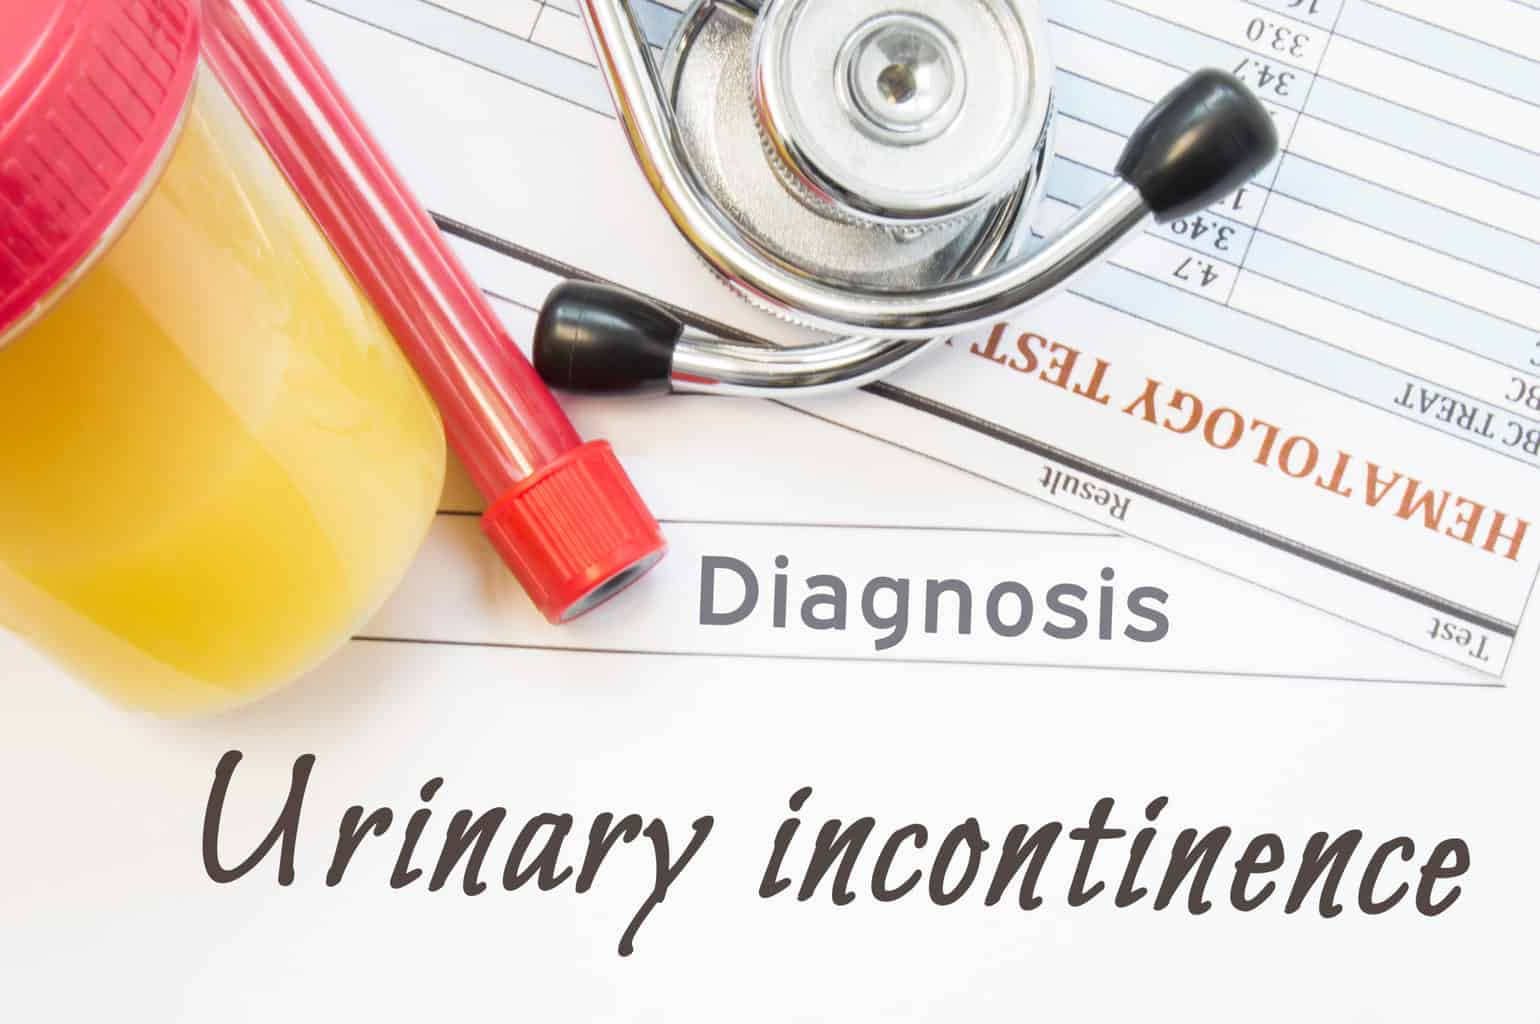 What type of urinary incontinence do you have?